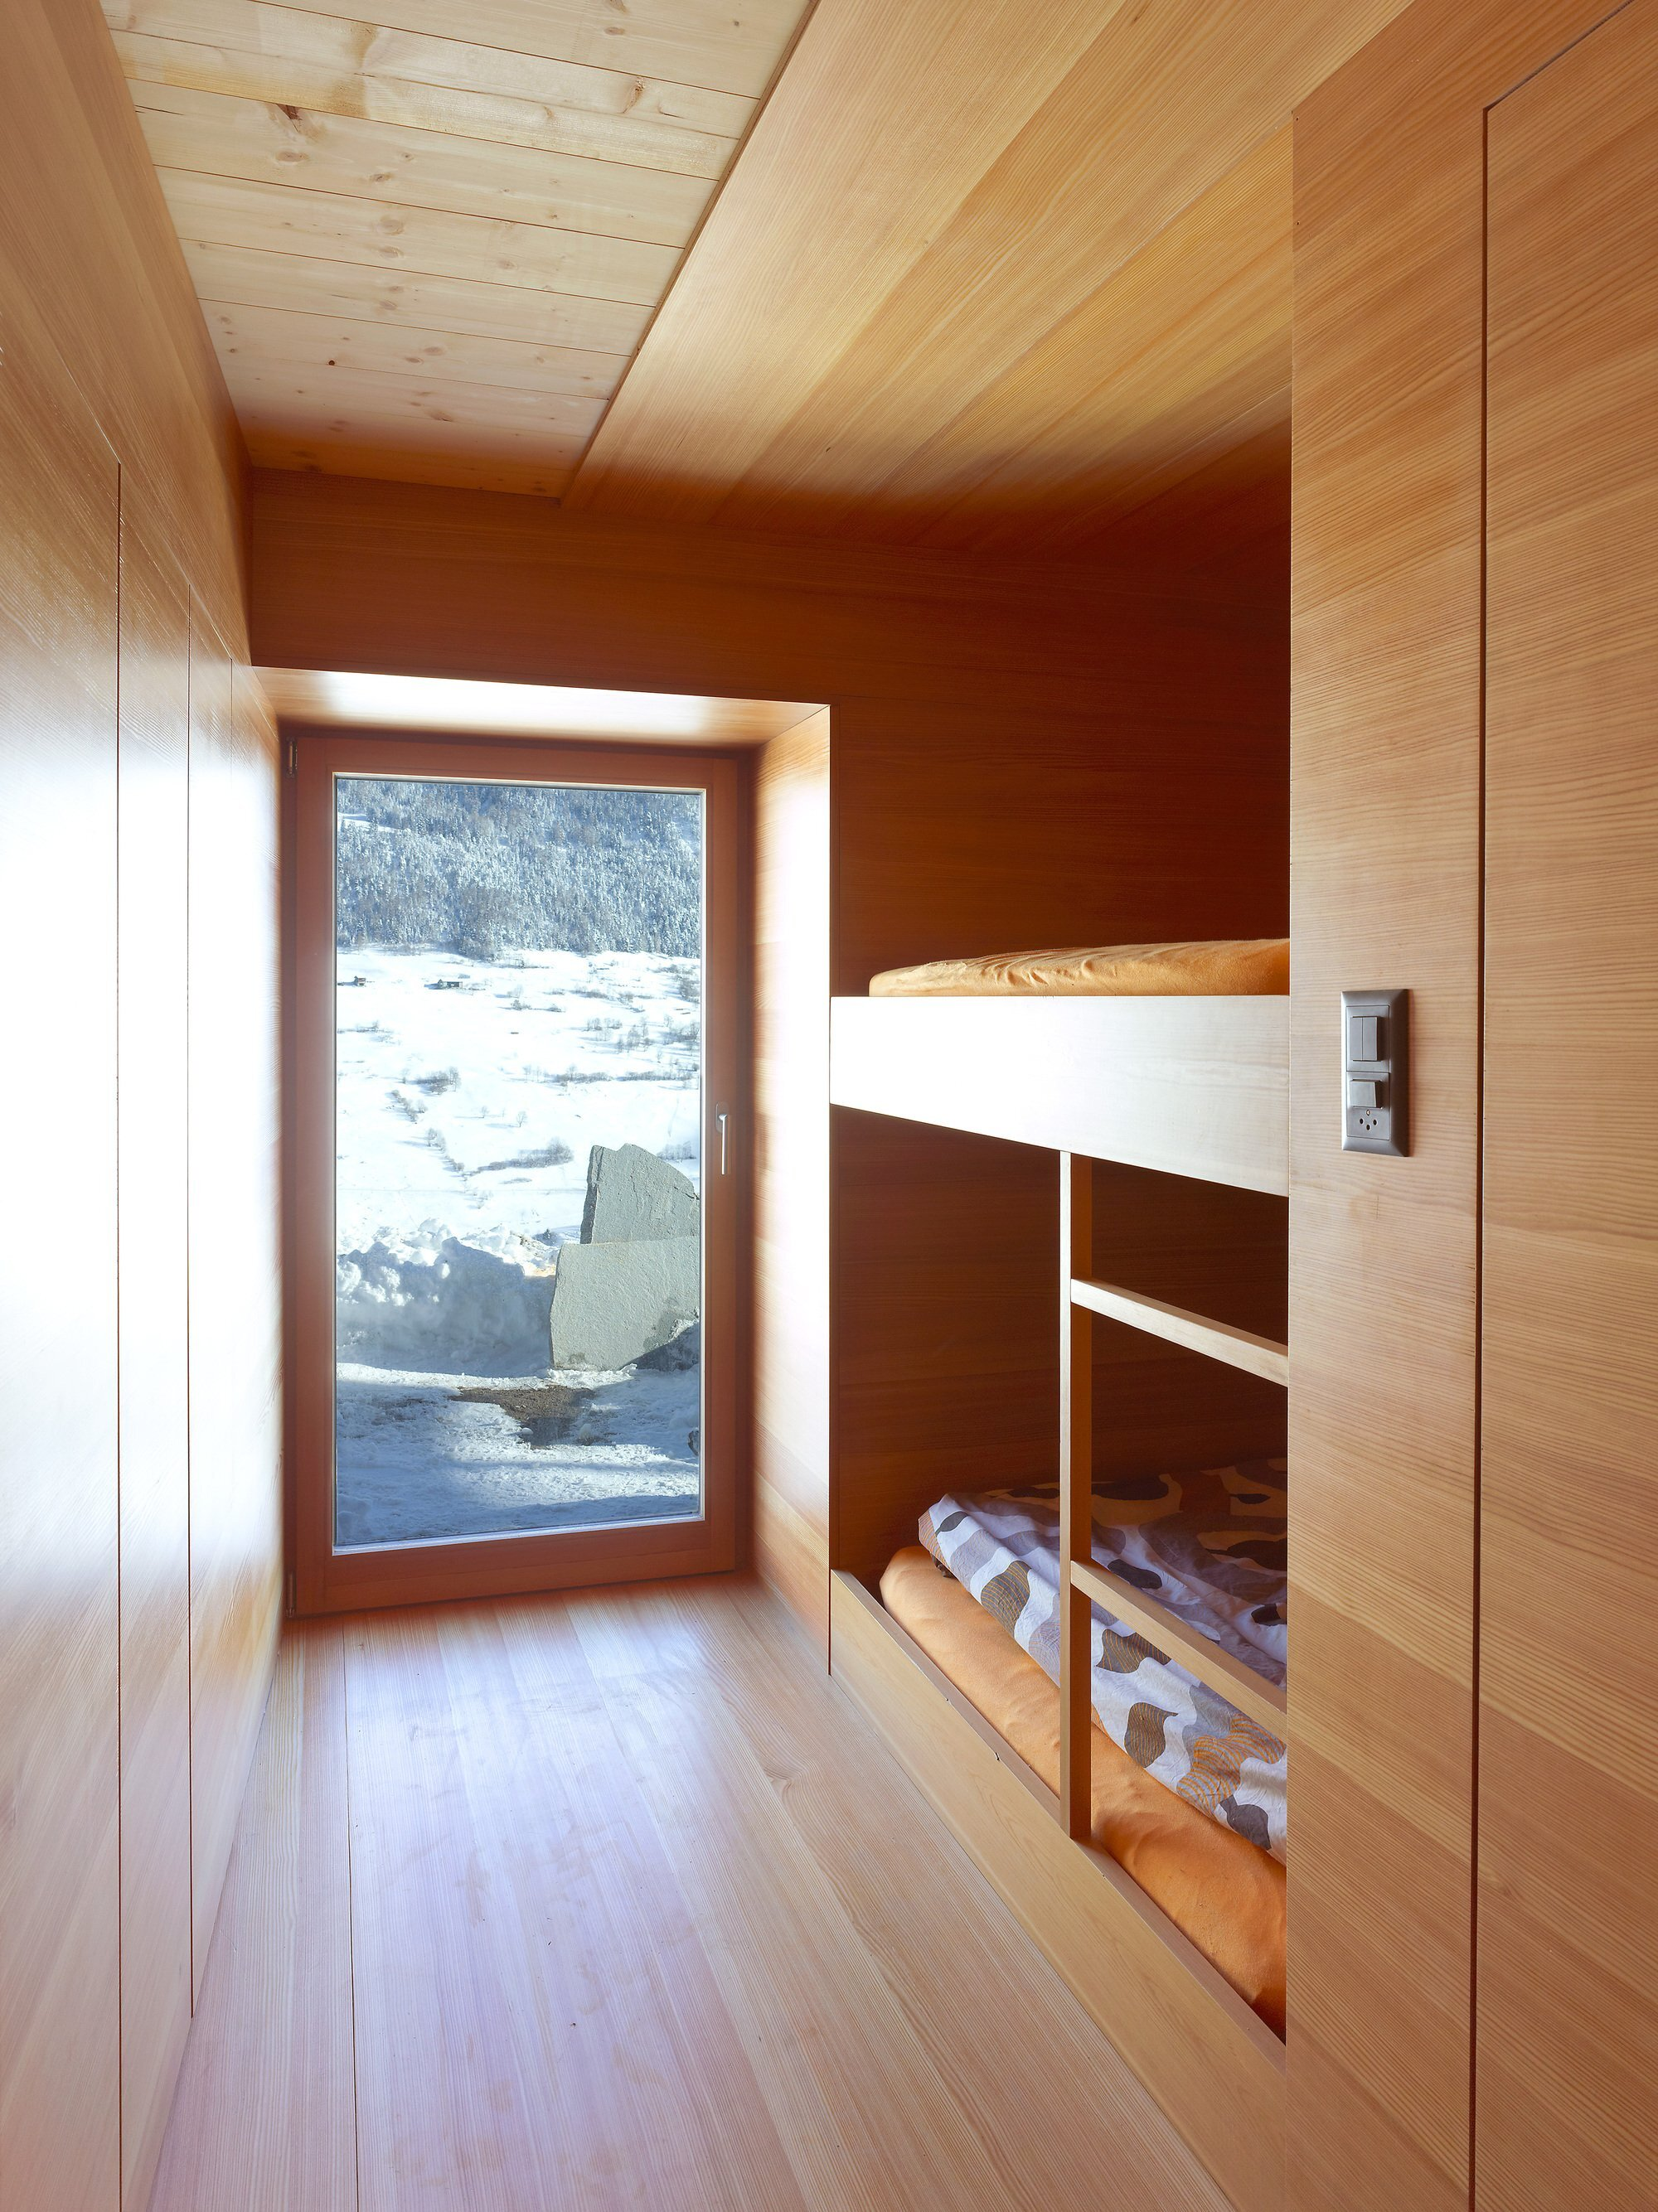 Boisset House in Switzerland by Savioz Fabrizzi Architectes - Bedroom - Humble Homes